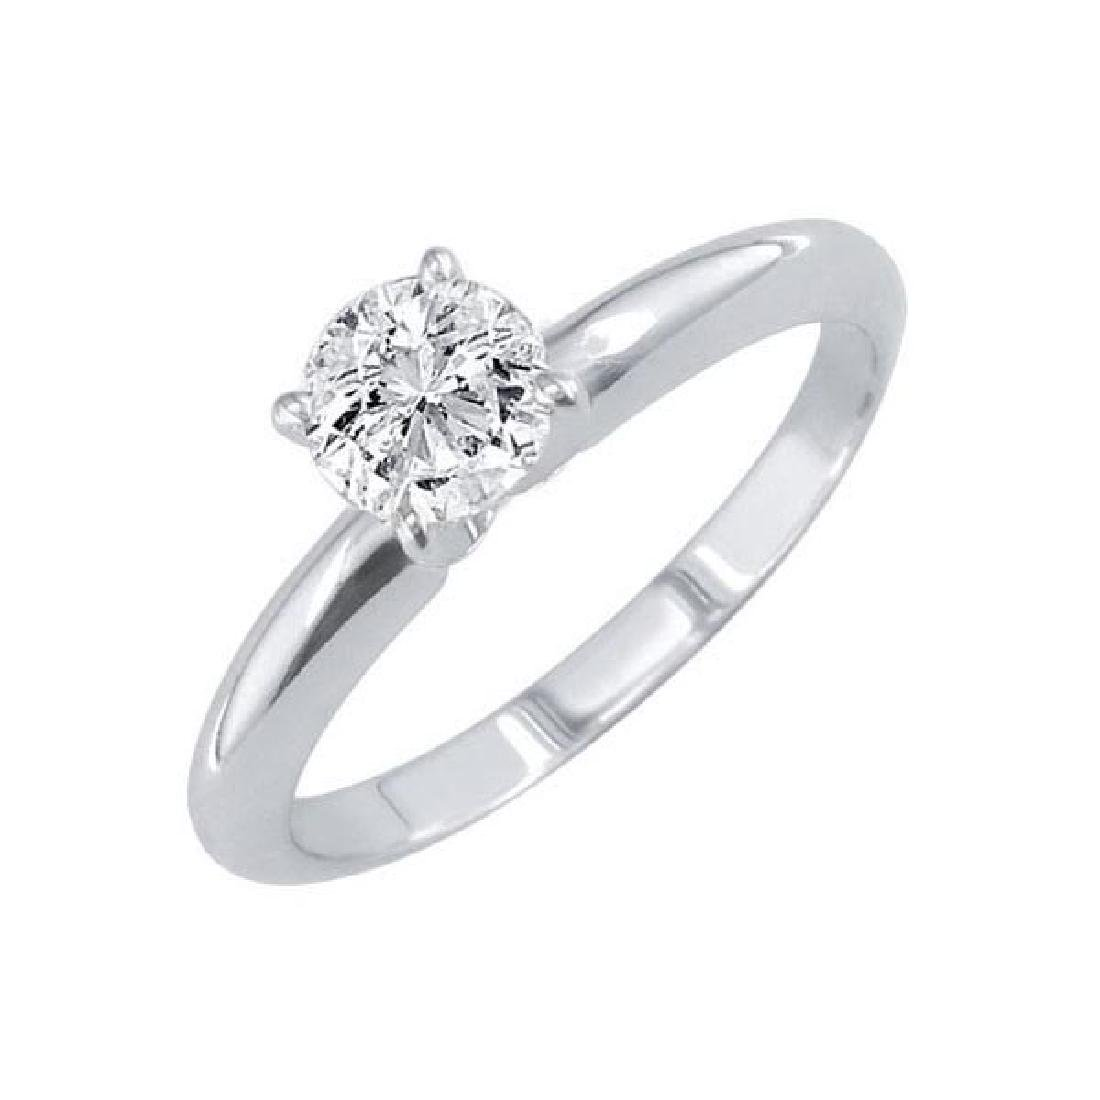 Certified 1.11 CTW Round Diamond Solitaire 14k Ring I/I